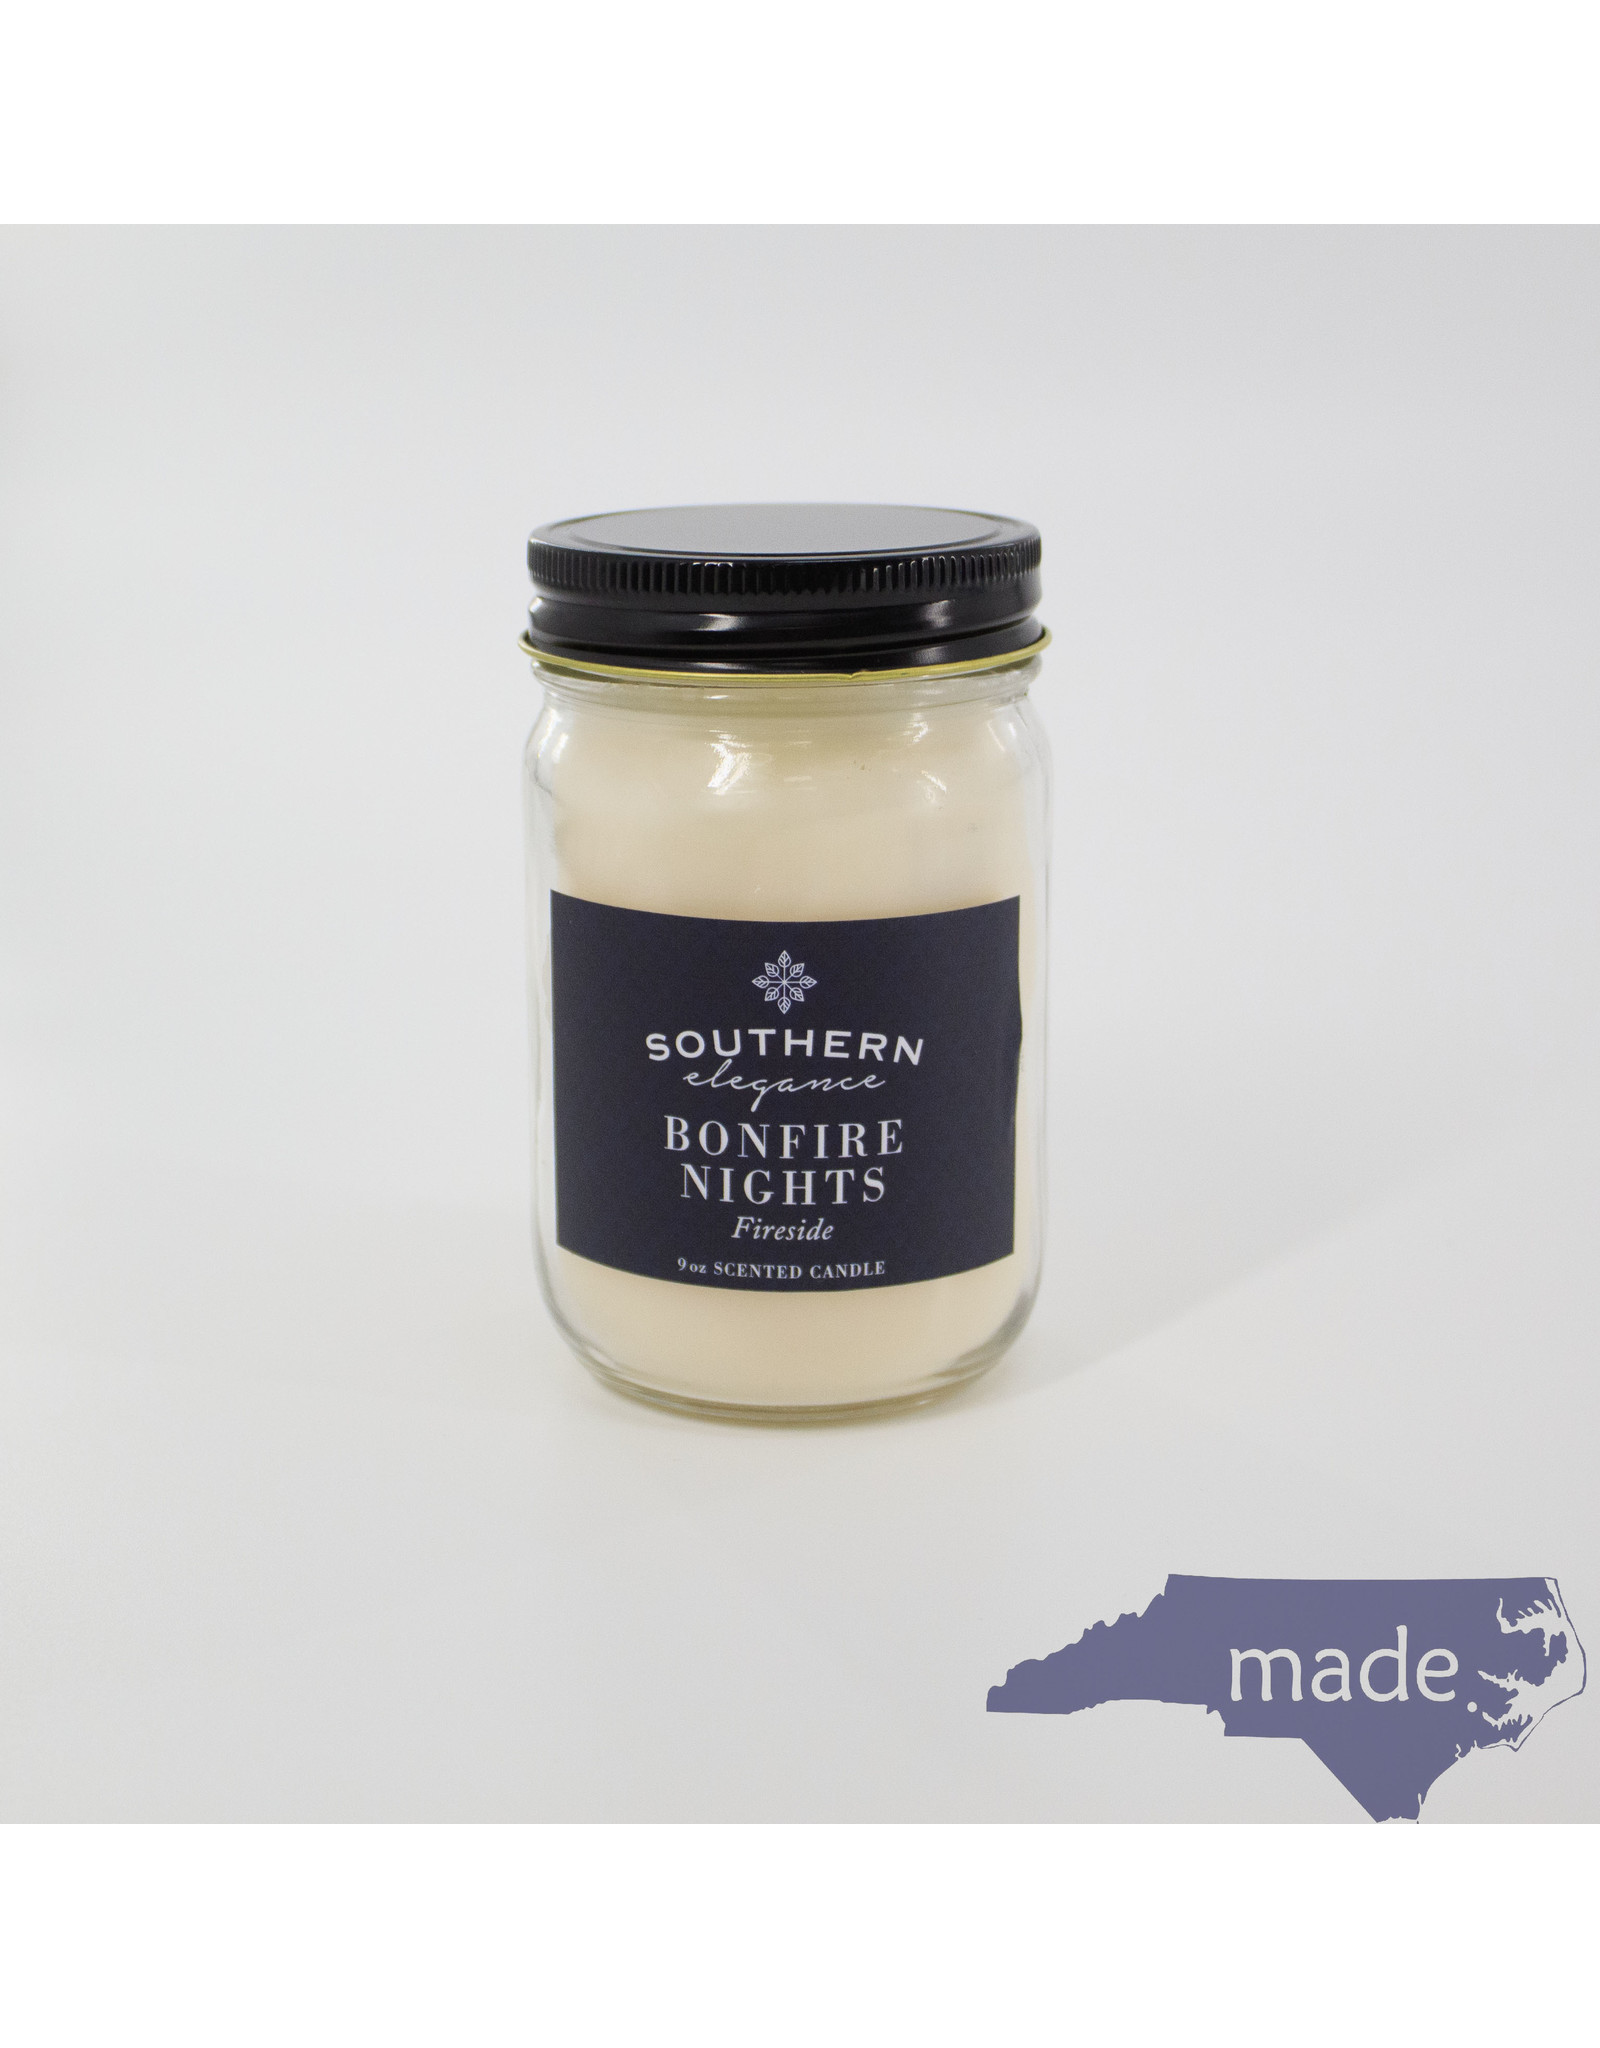 Southern Elegance Candle Co. Bonfire Nights - Southern Elegance Candle Co.